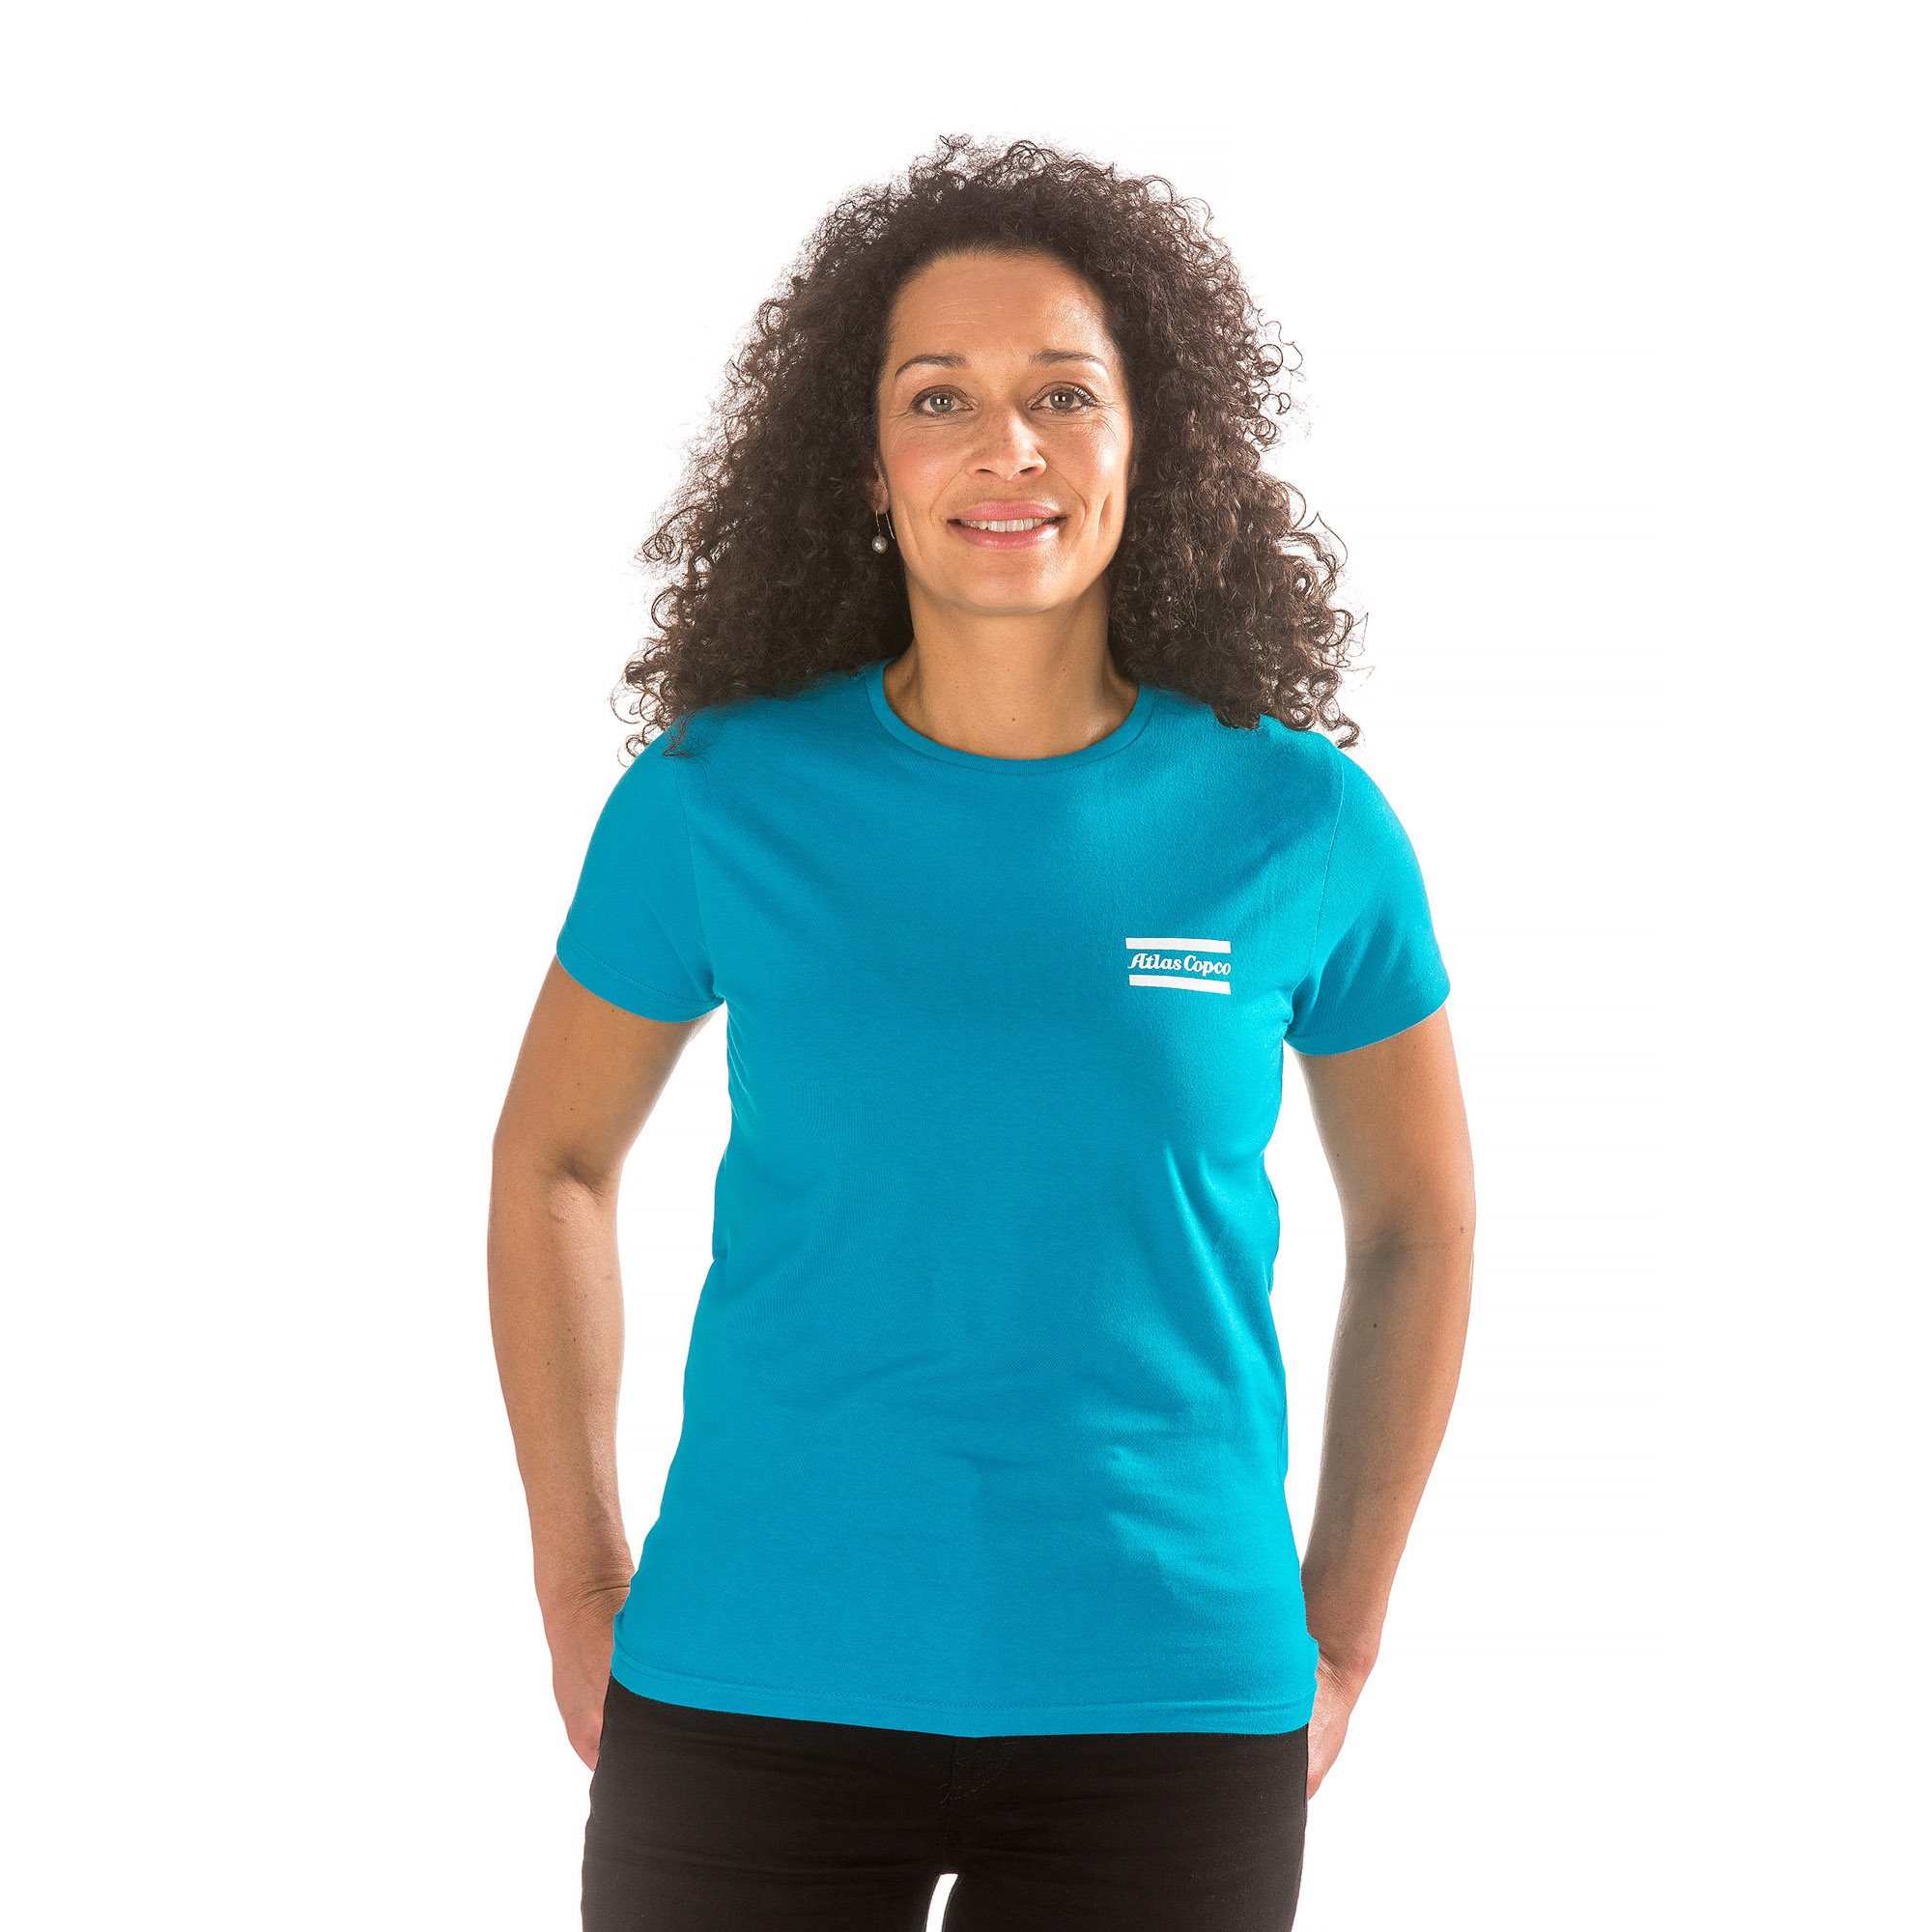 A high quality t-shirt in Atlas Copco blue. Green stitches and neck tape are added as nice details. Tightly knitted for smoothness and strength. Shoulder-to-shoulder taping helps prevent raveling and rip-out. Durable double-stitch trim.